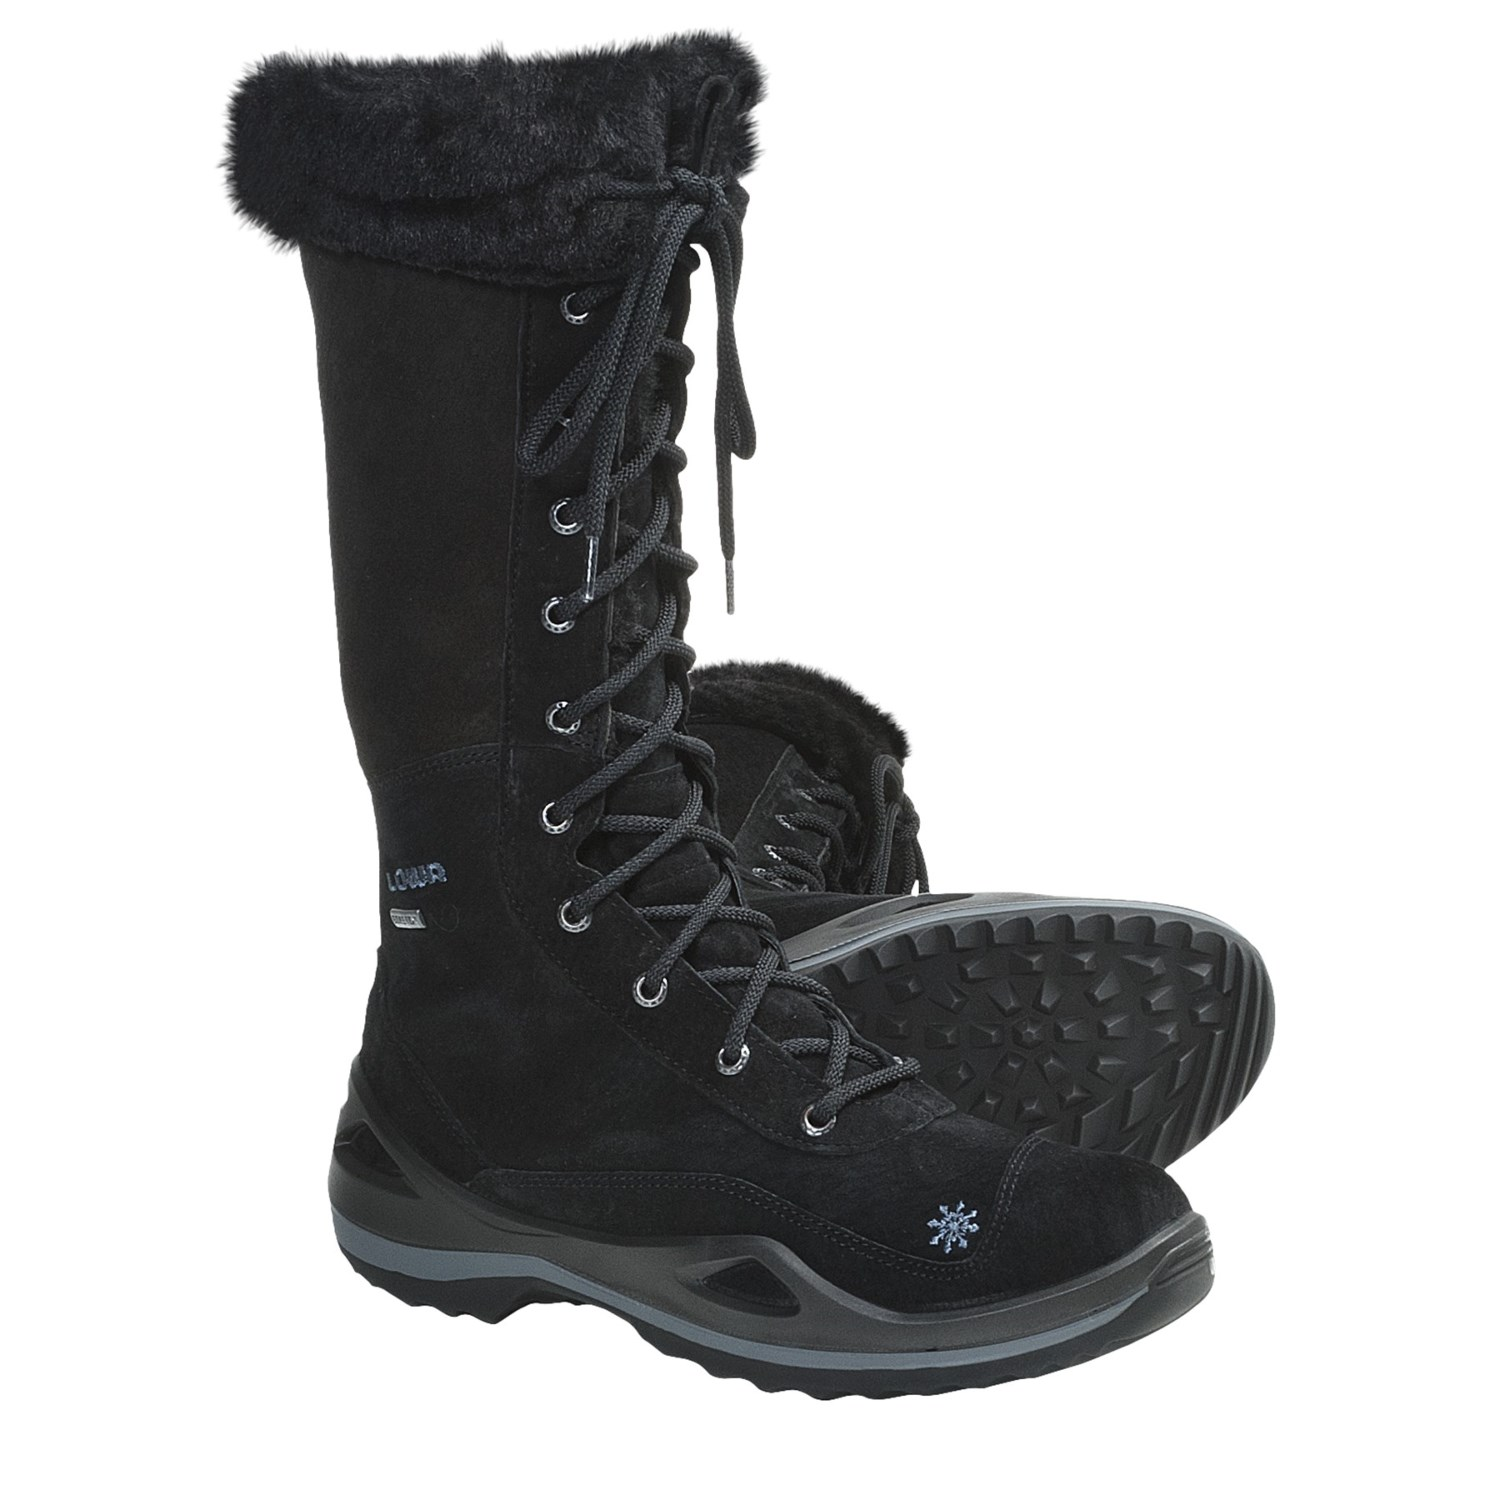 Women's Gore Tex Snow Boots | Santa Barbara Institute for ...